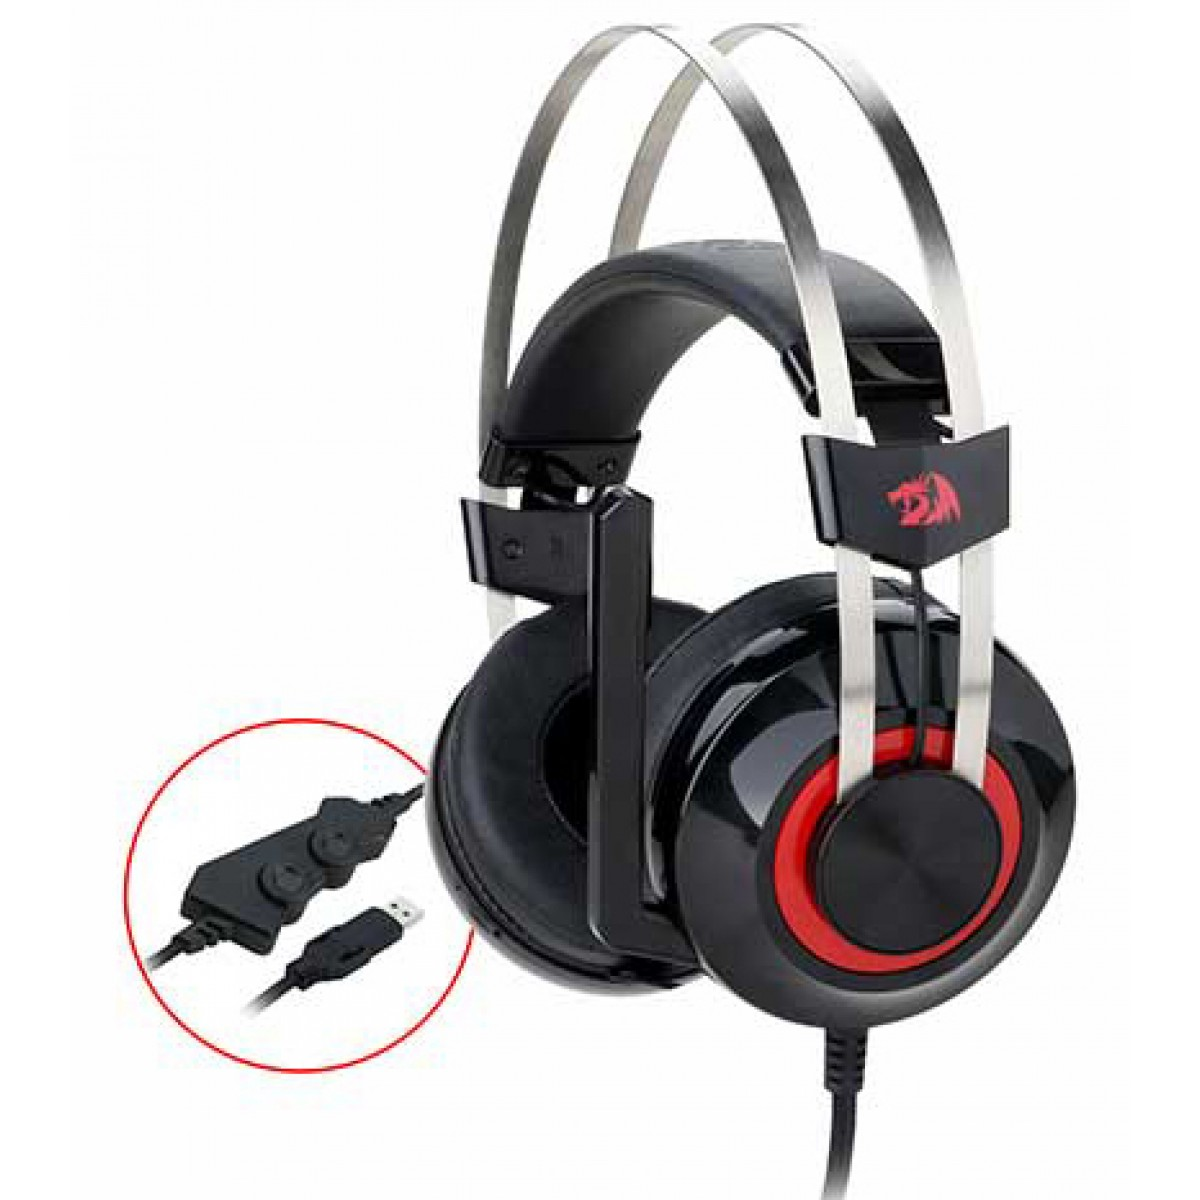 Headset Redragon Talos H601, Surround 7.1, Black